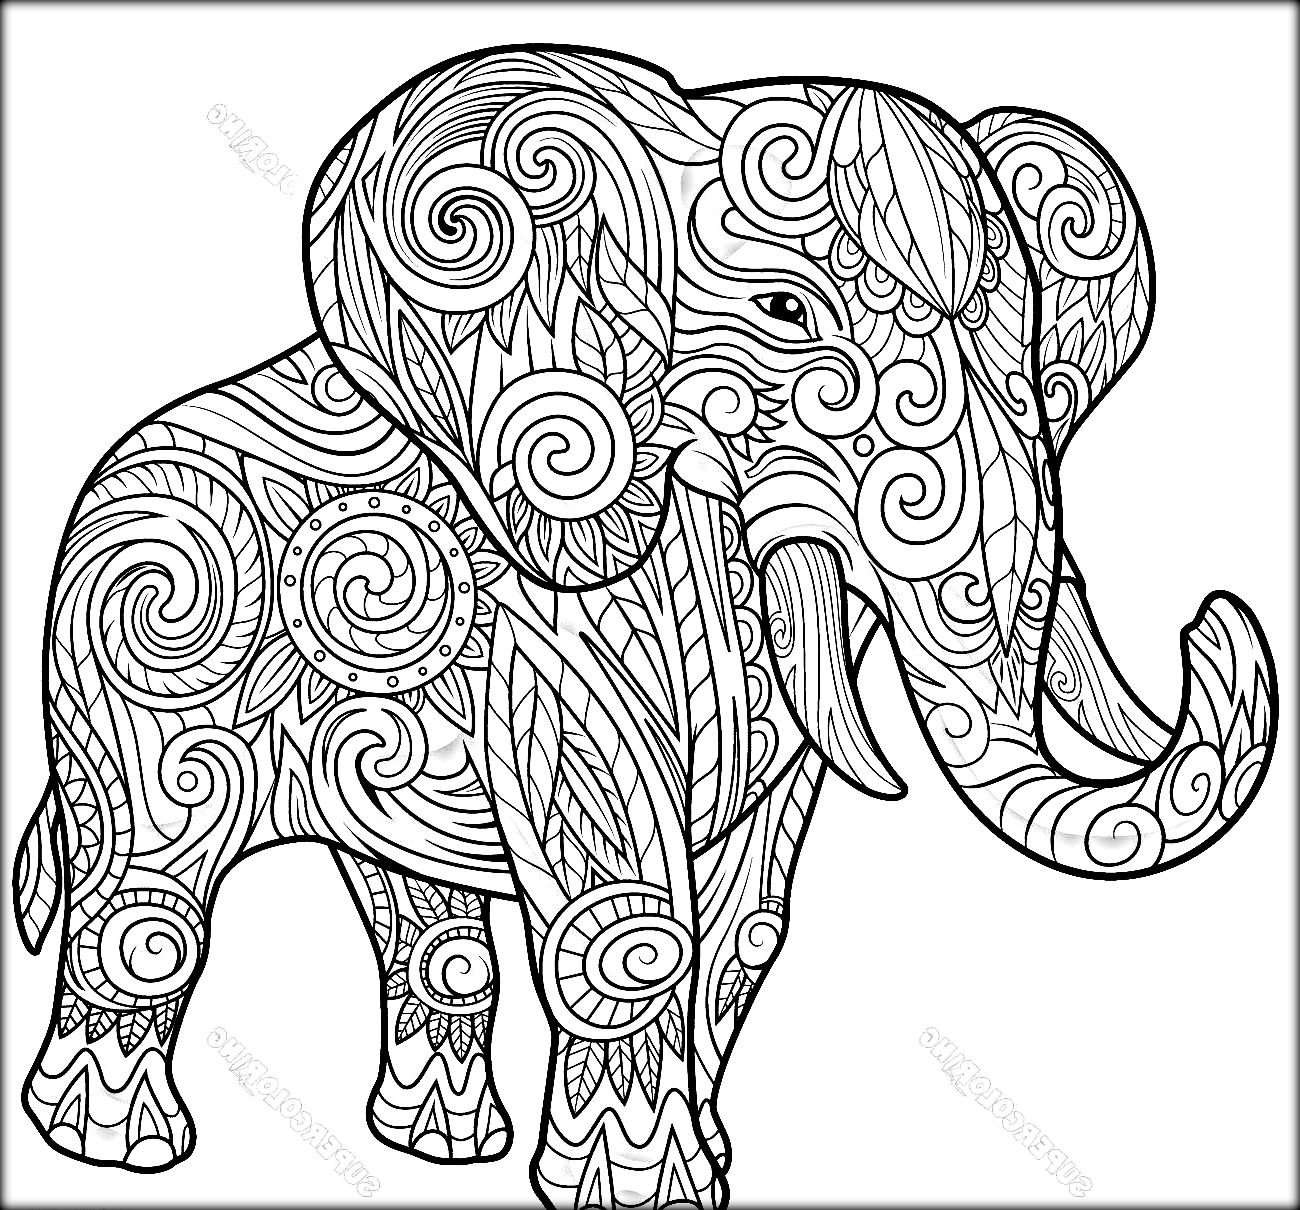 Hard Coloring Pages Of Elephants - Worksheet & Coloring Pages